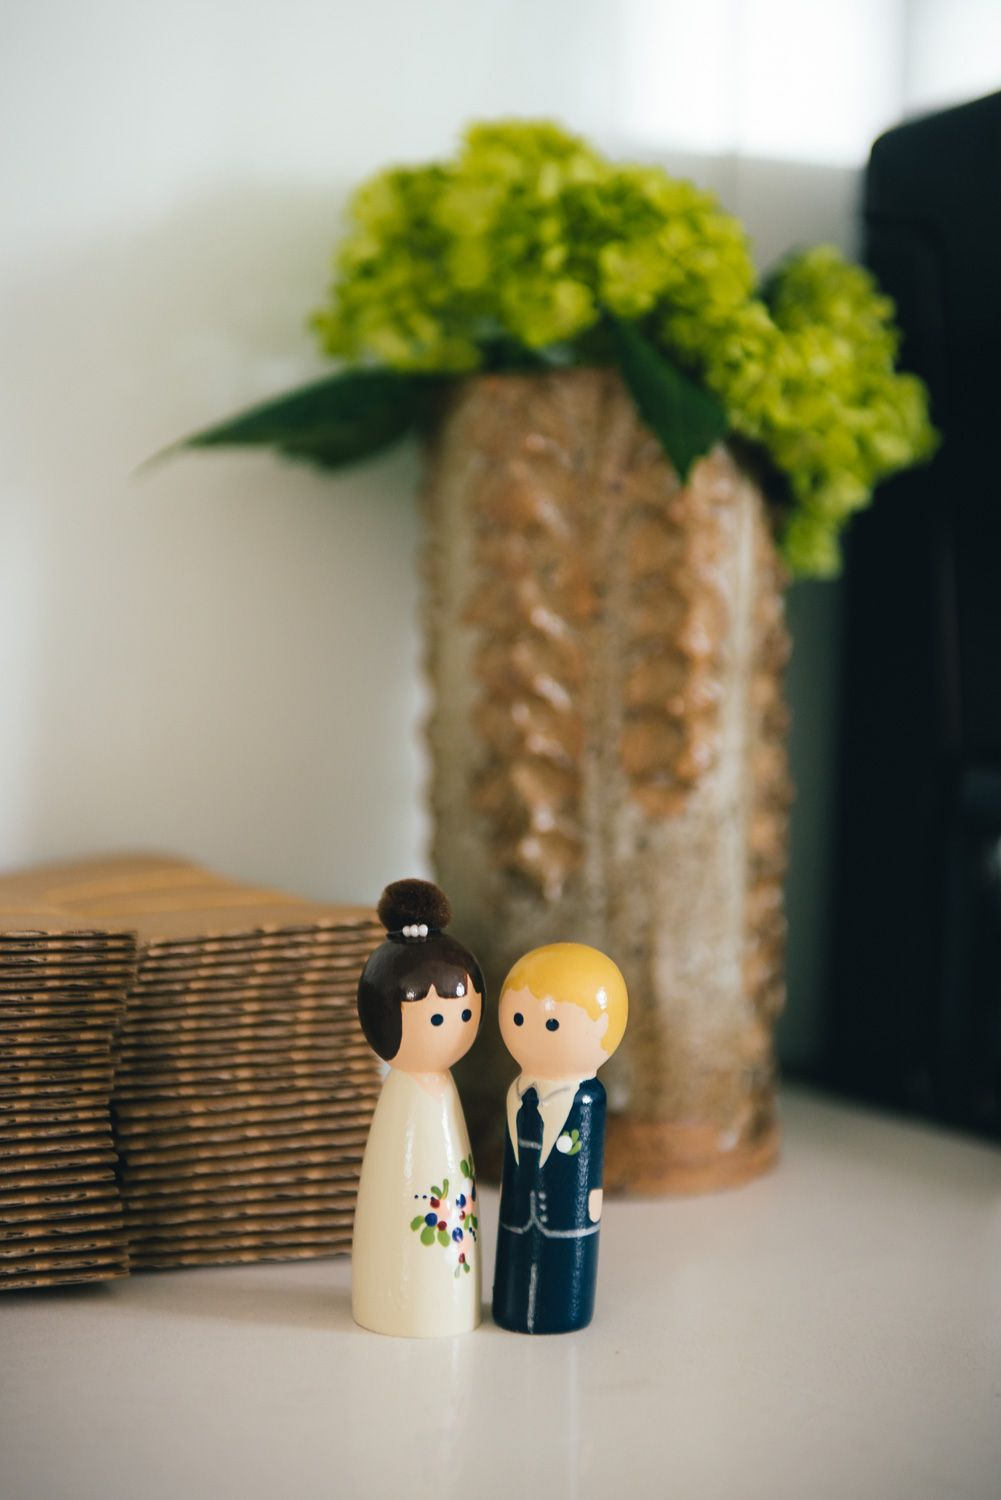 Cute wedding cake topper of bride and groom wedding day details